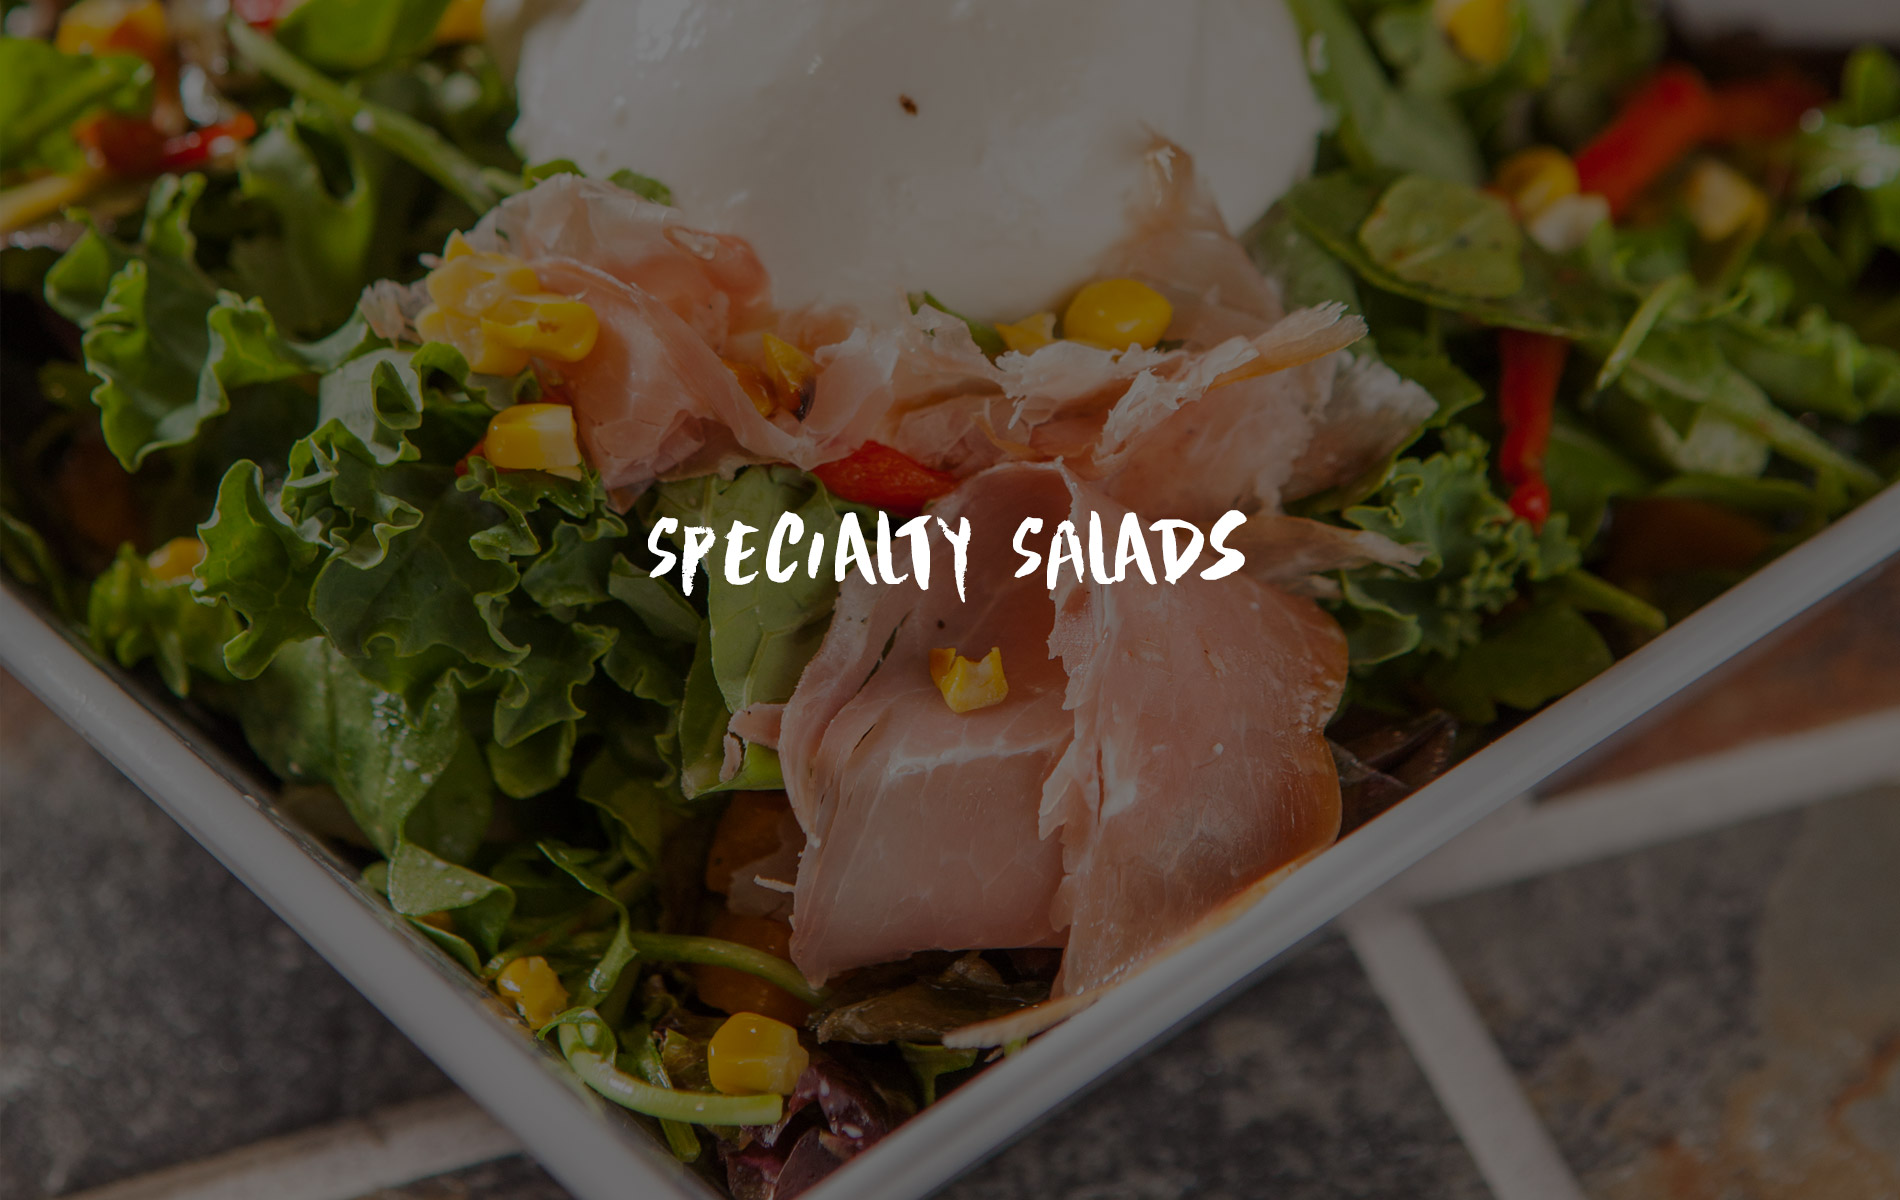 Specialty Salads